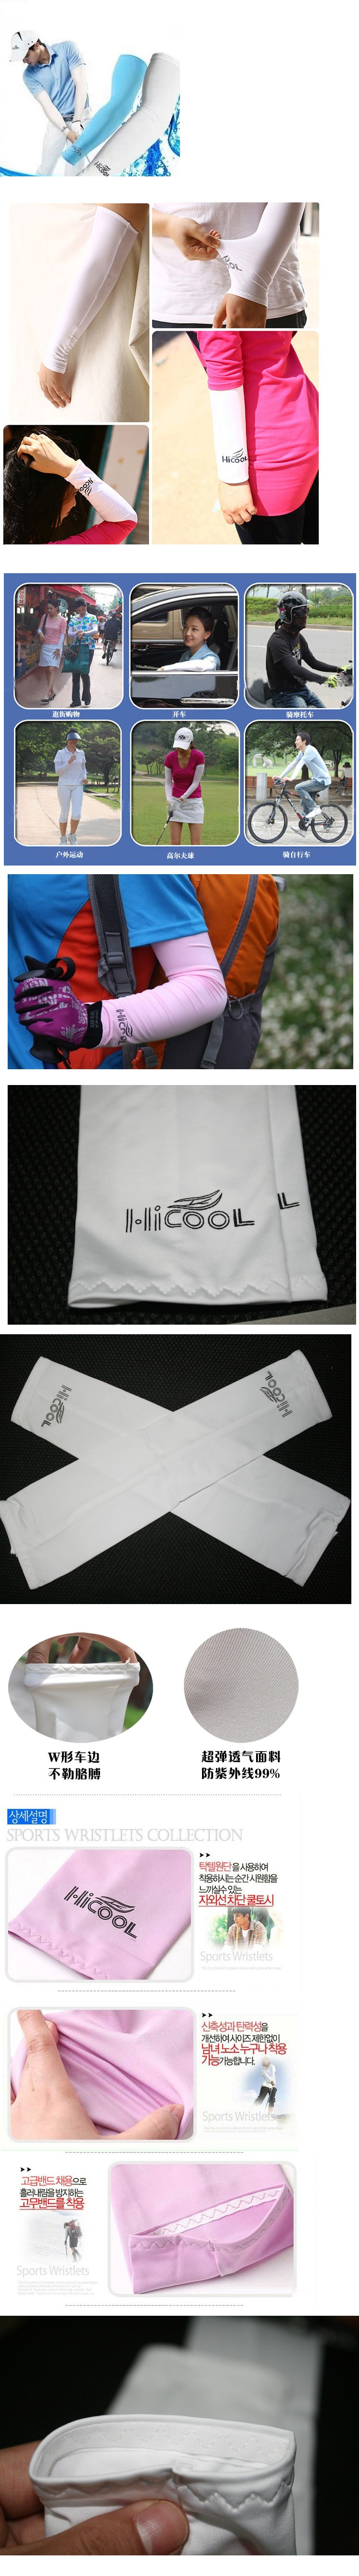 HICOOL UV Protection Elastic Arm Sleeves BLACK